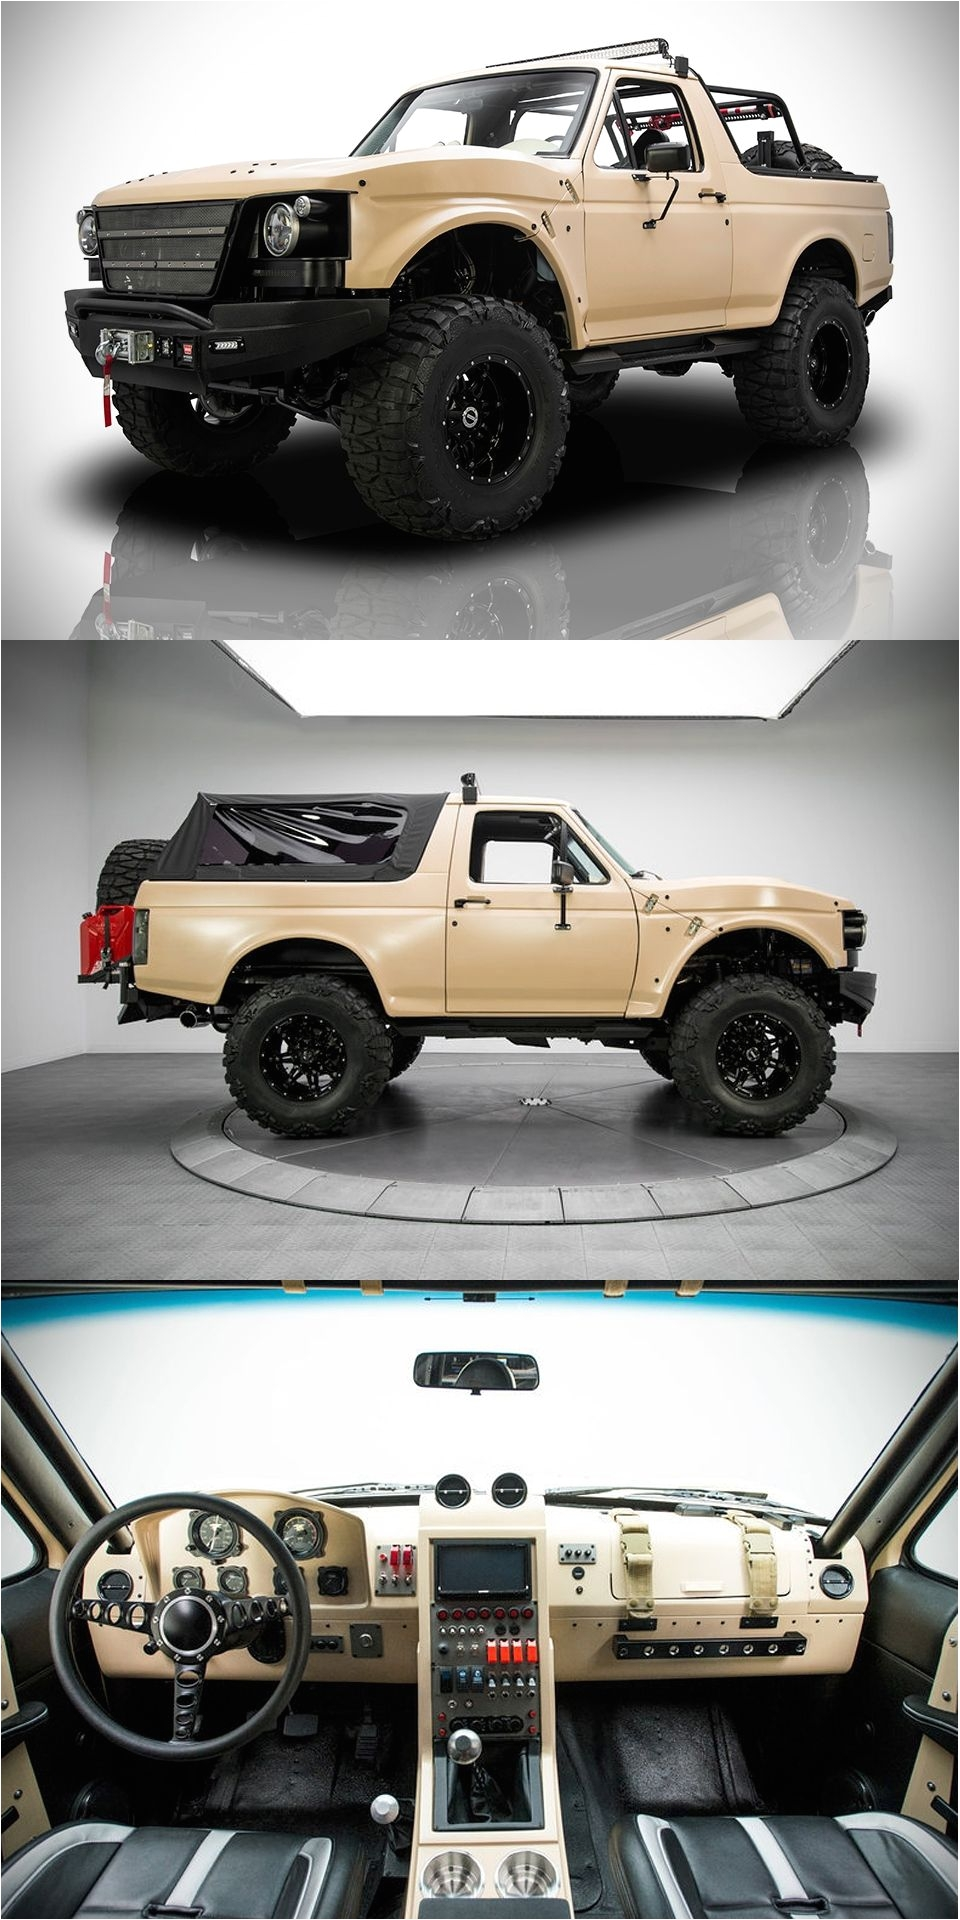 1991 ford bronco project fearless custom automobile inside looks like a cockpit nice customization american cars and trucks diy